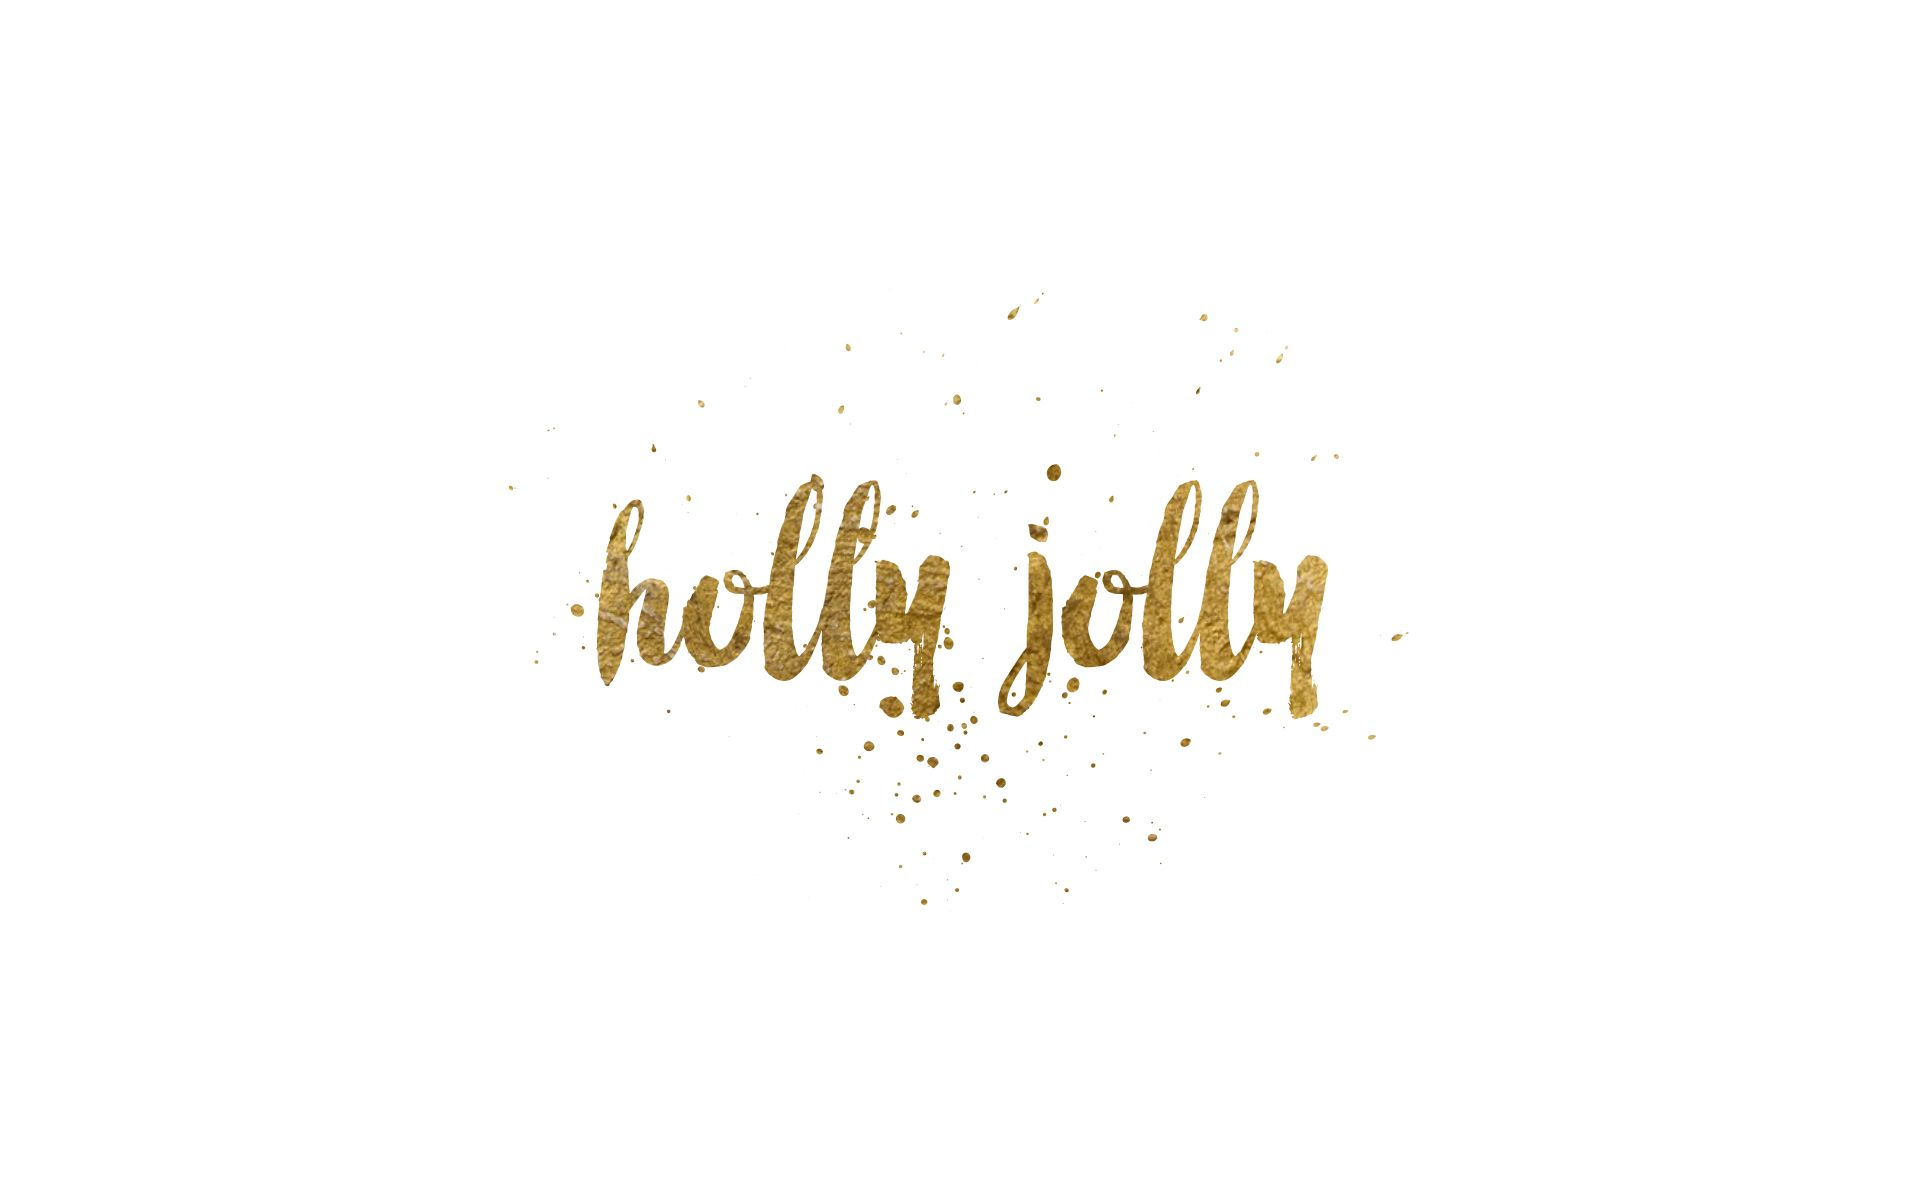 Holly Jolly Gold Foil Desktop Wallpaper 1920 X 1200 Christmas Christmas Desktop Cute Christmas Wallpaper Laptop Wallpaper